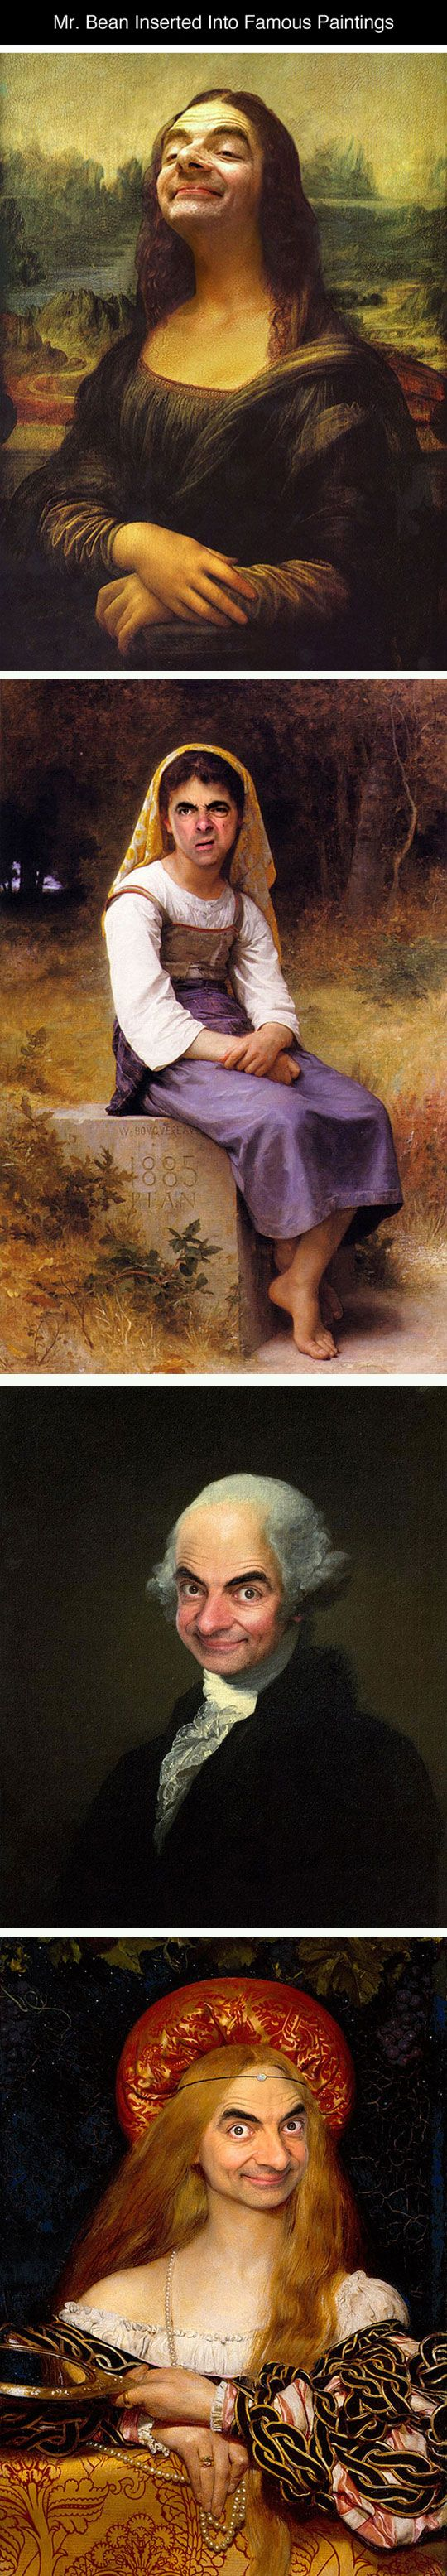 Mr. Bean in classic paintings. Haha!